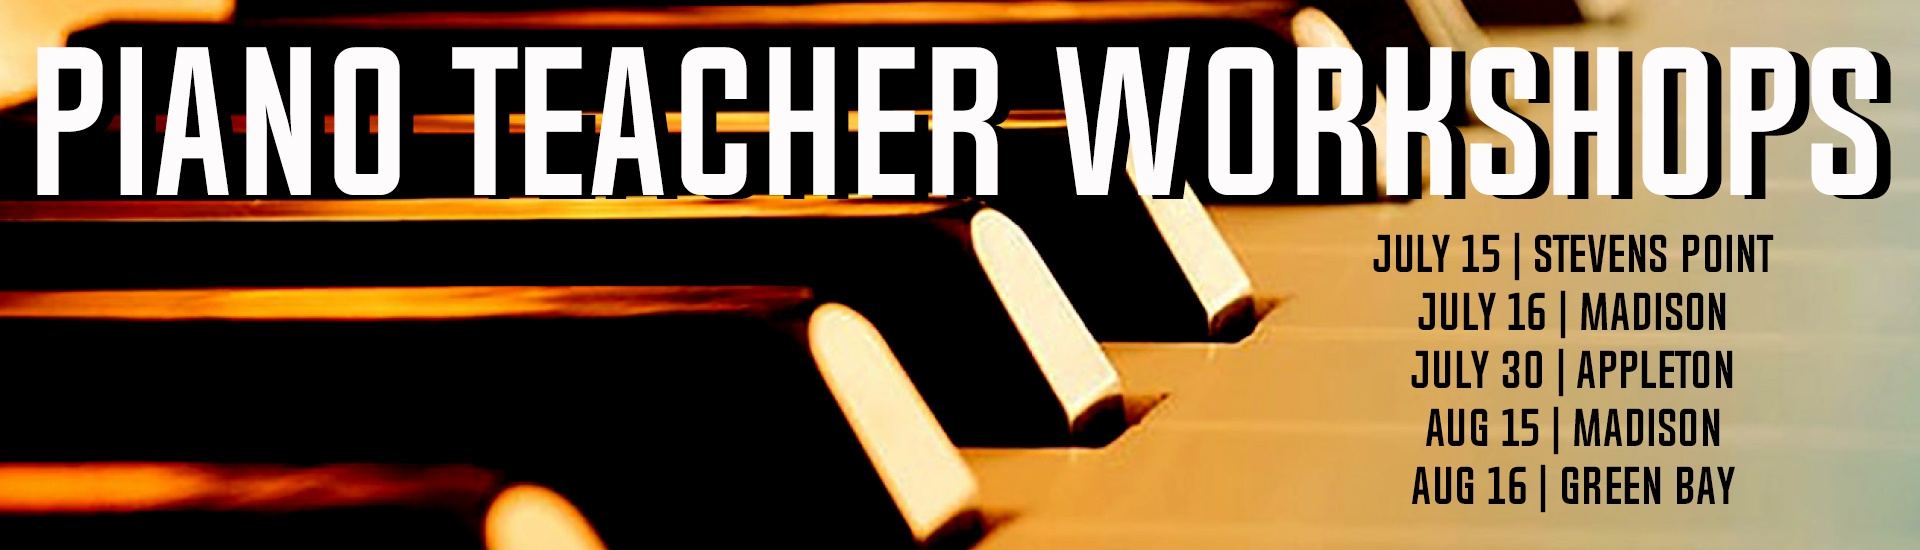 piano teacher workshops